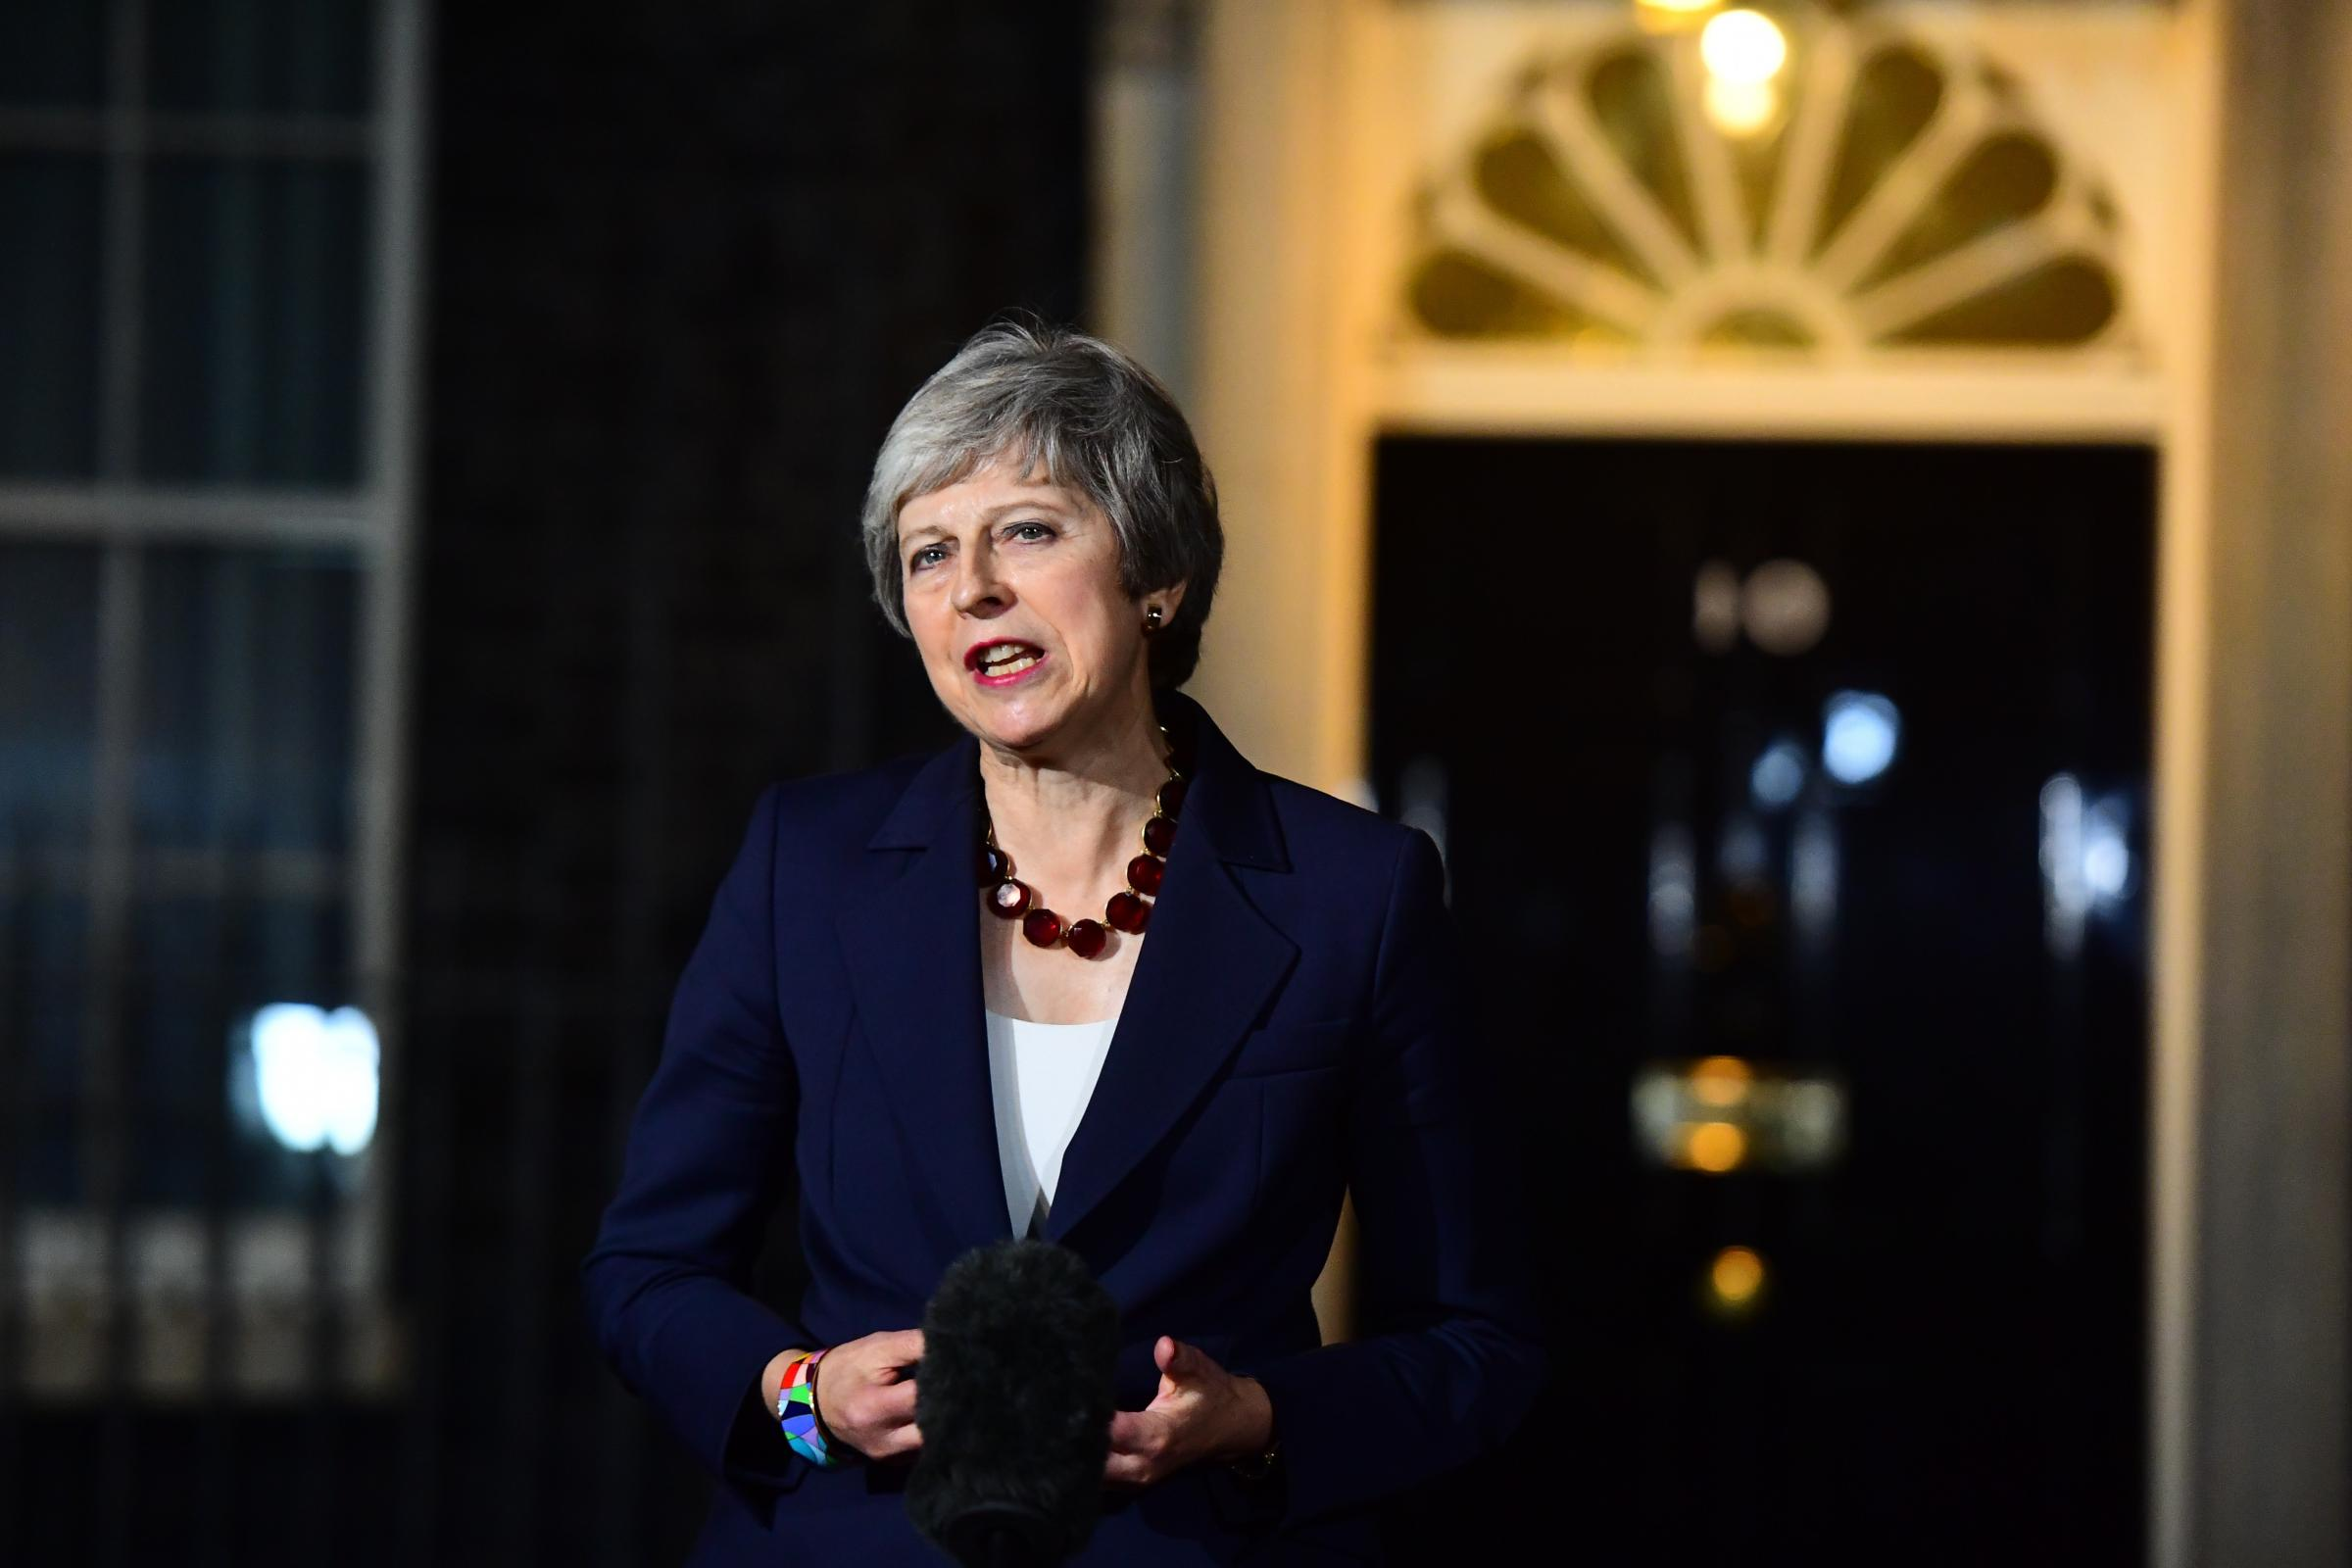 Cabinet approves Brexit deal after marathon five-hour meeting